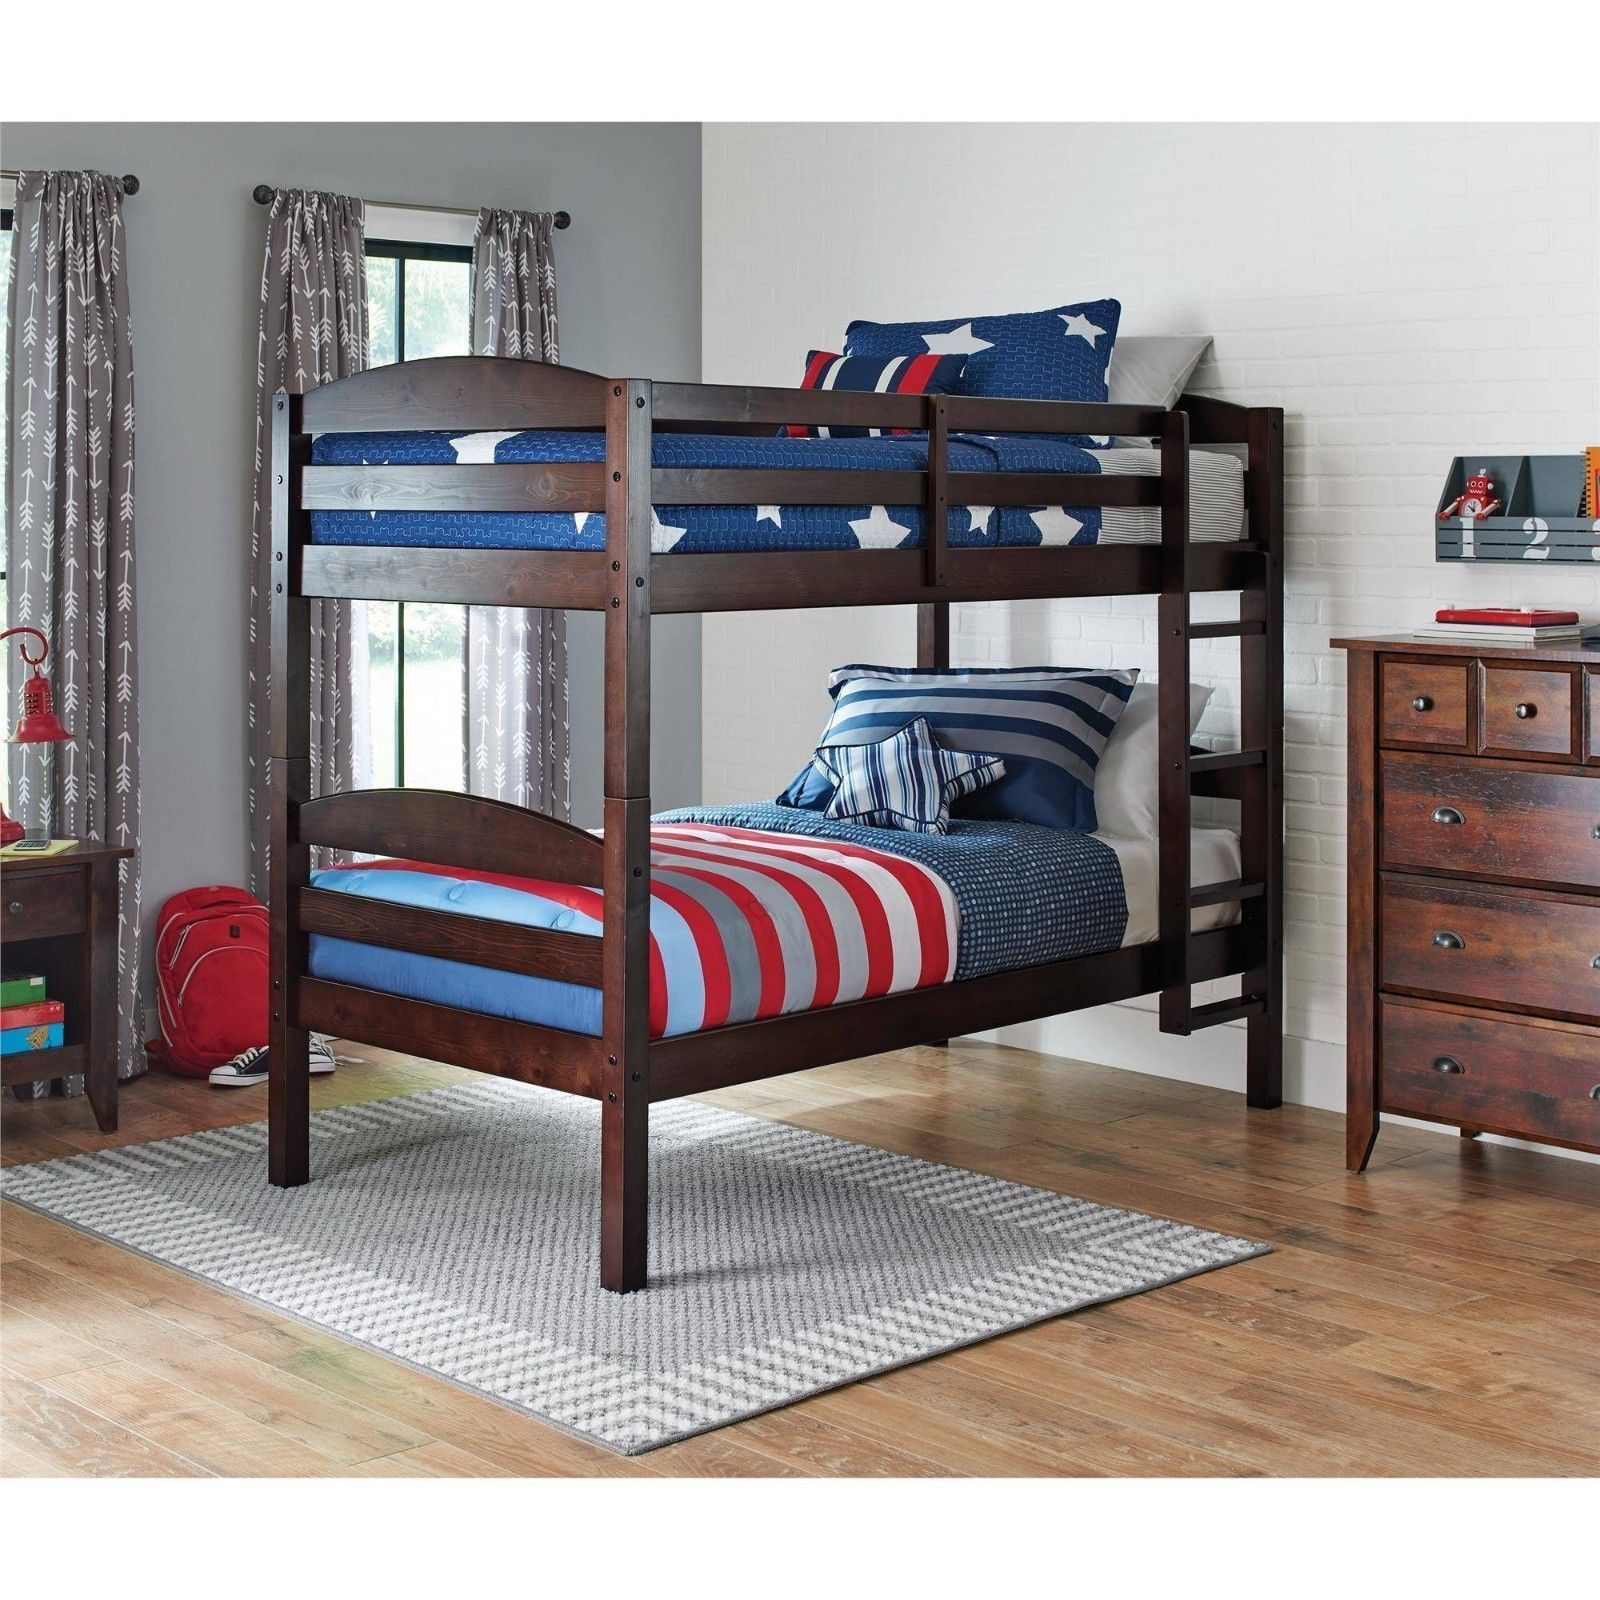 Bedroom sets 20480 better homes and gardens leighton twin